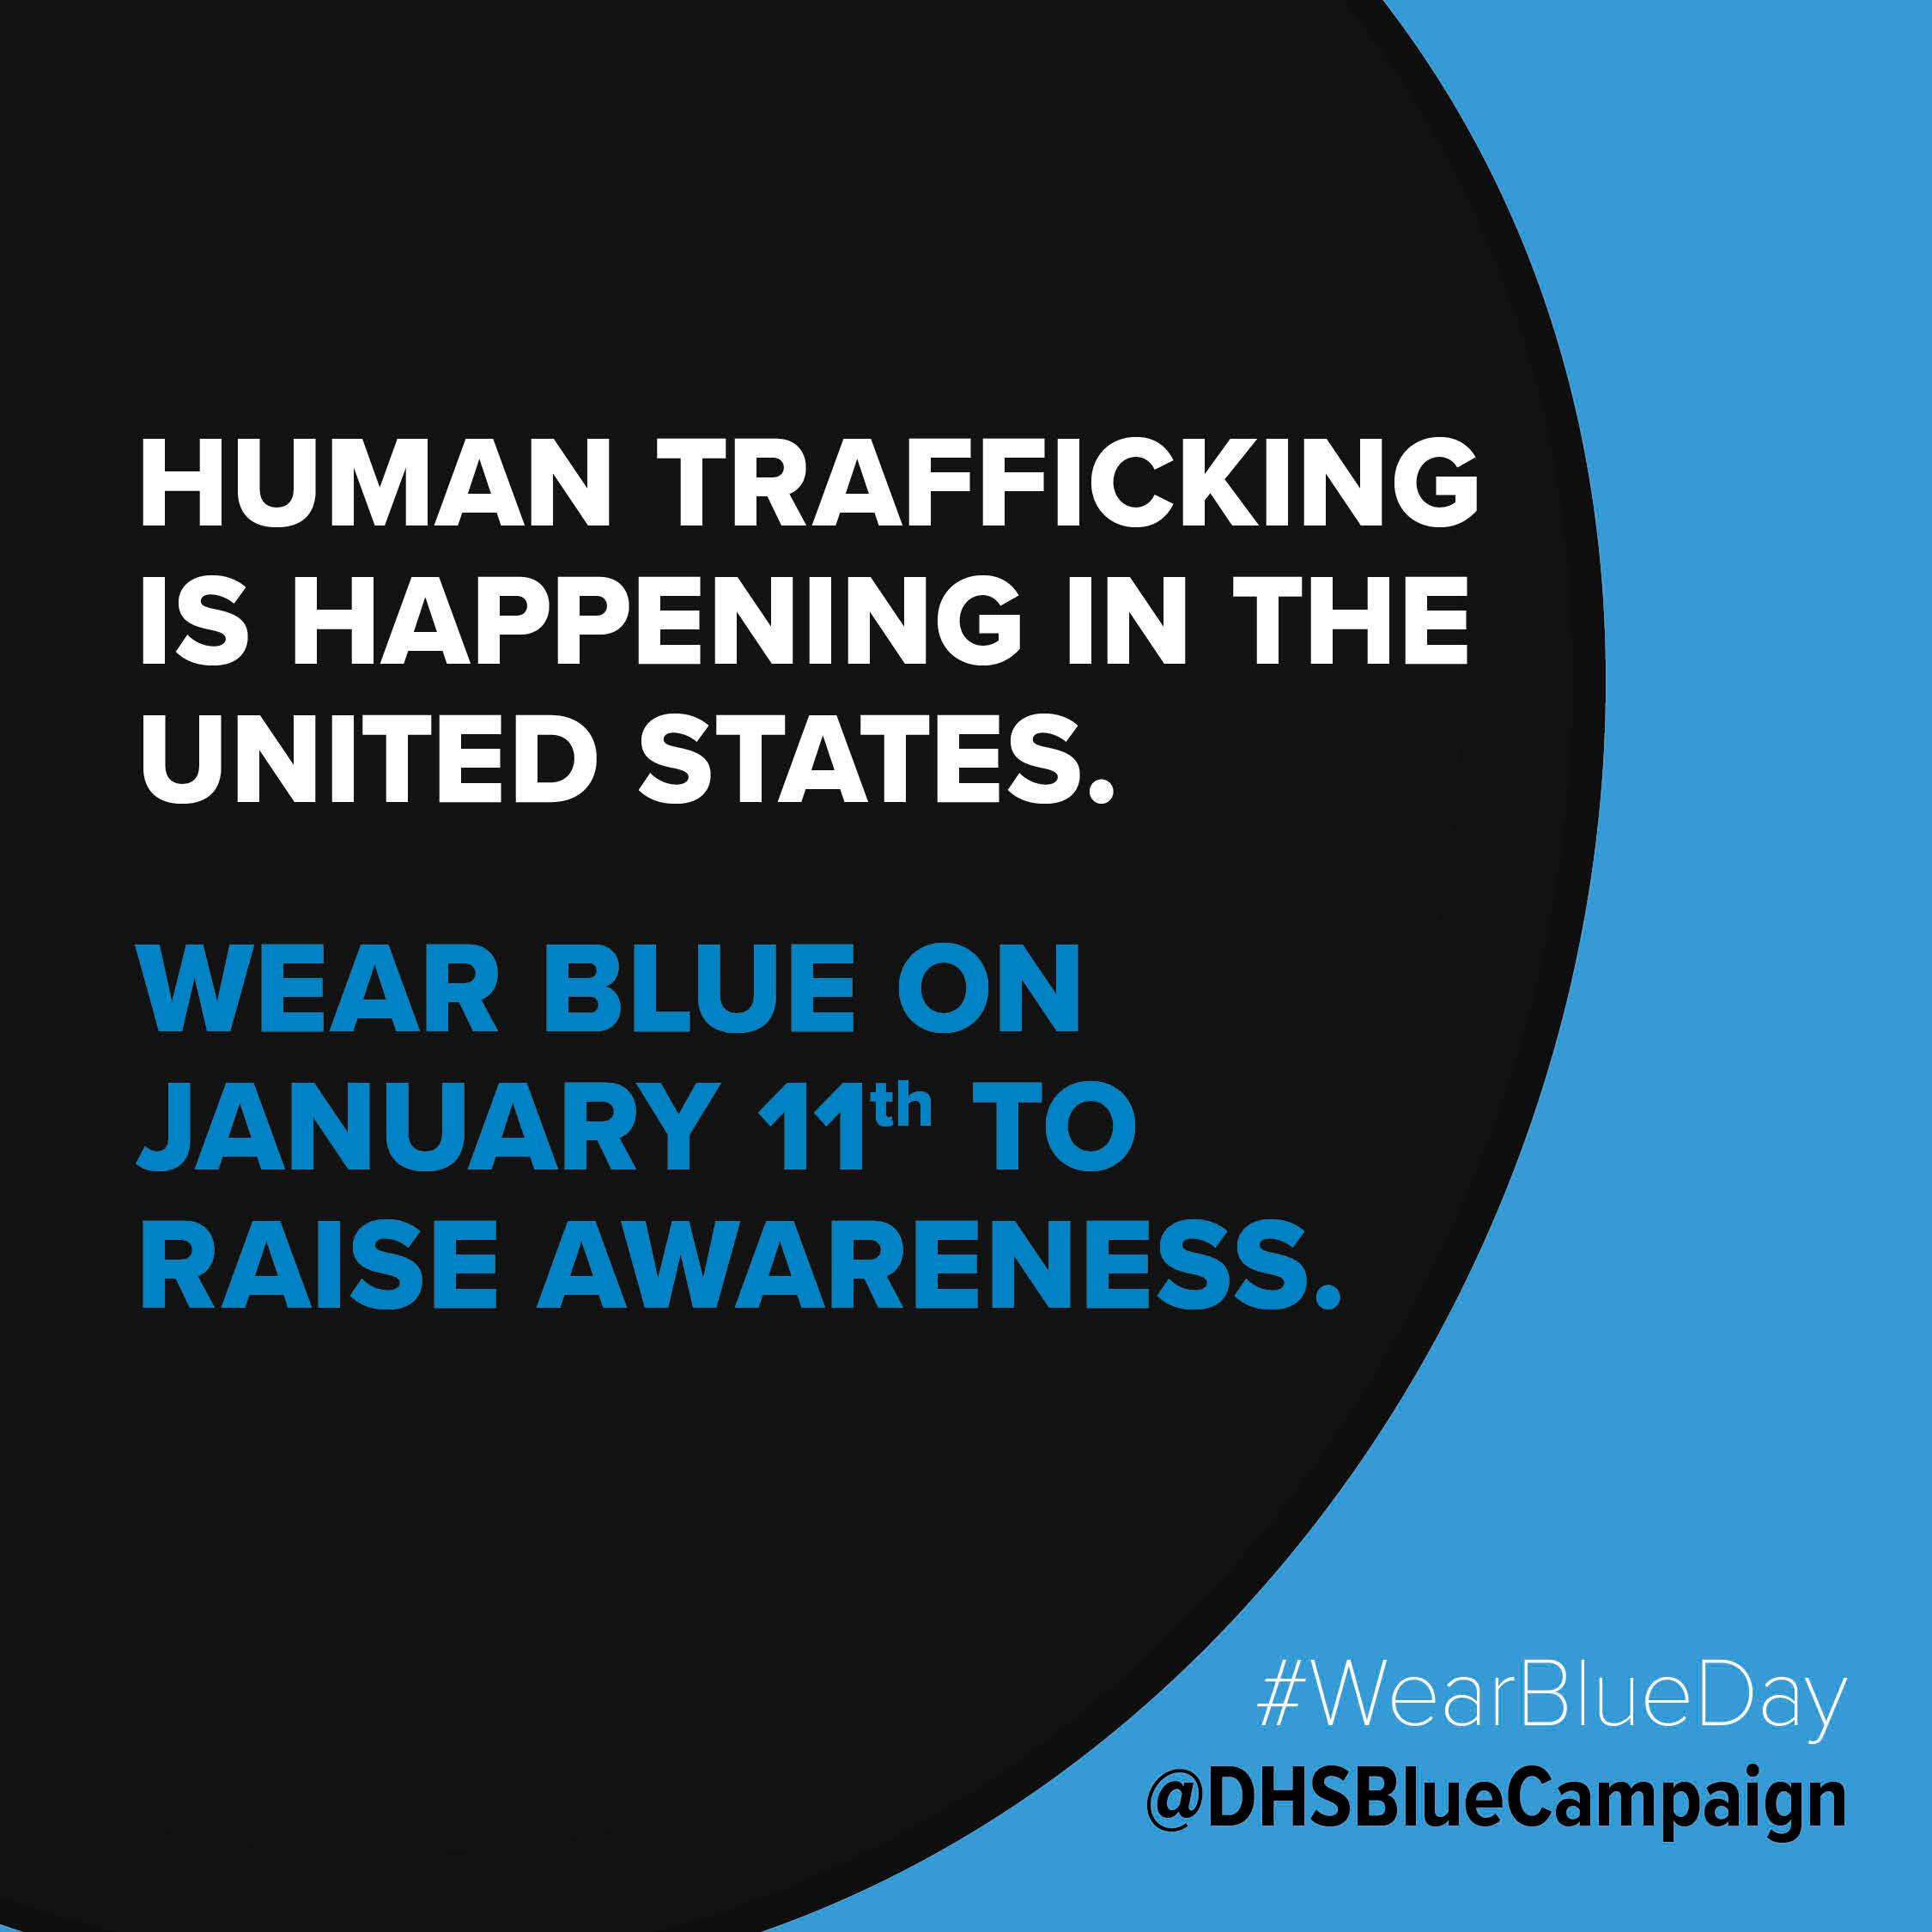 Human trafficking  is happening in the United States. Wear blue on January 11th to raise awareness. #WearBlueDay @DHSBlueCampaign